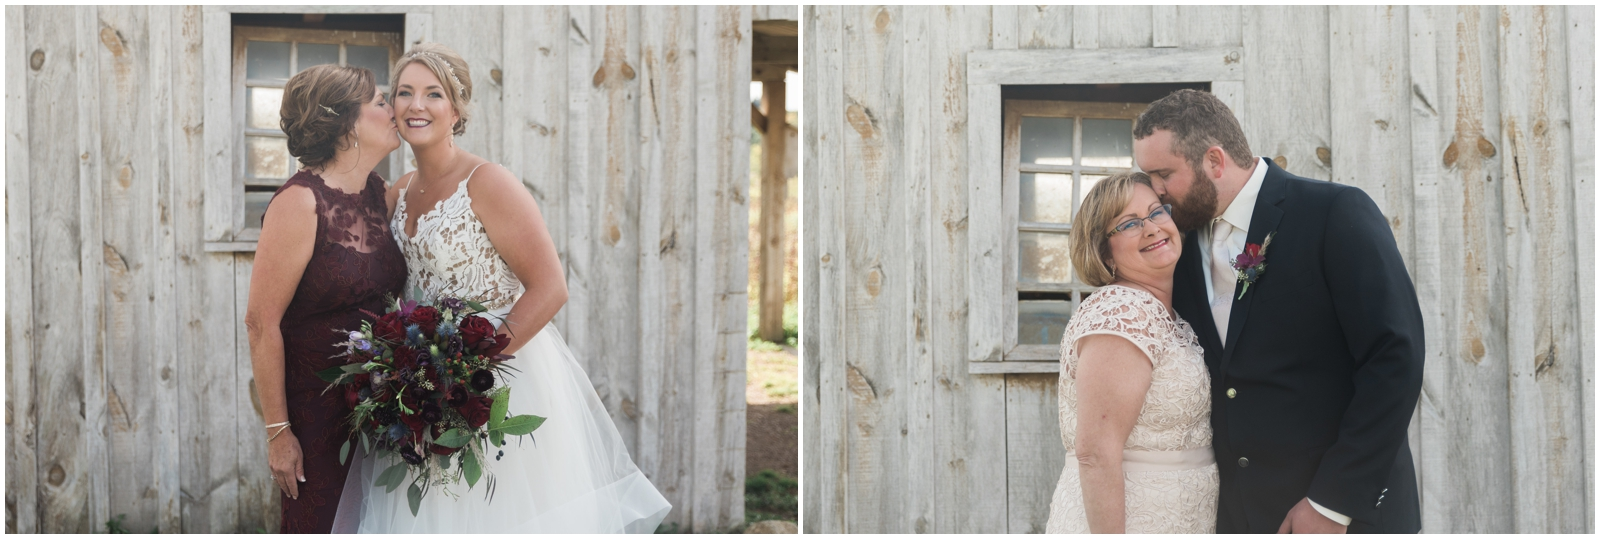 Minnesota-Wedding-Venue- Chaska-MN-Rustic-Barn-Weddings_0611.jpg